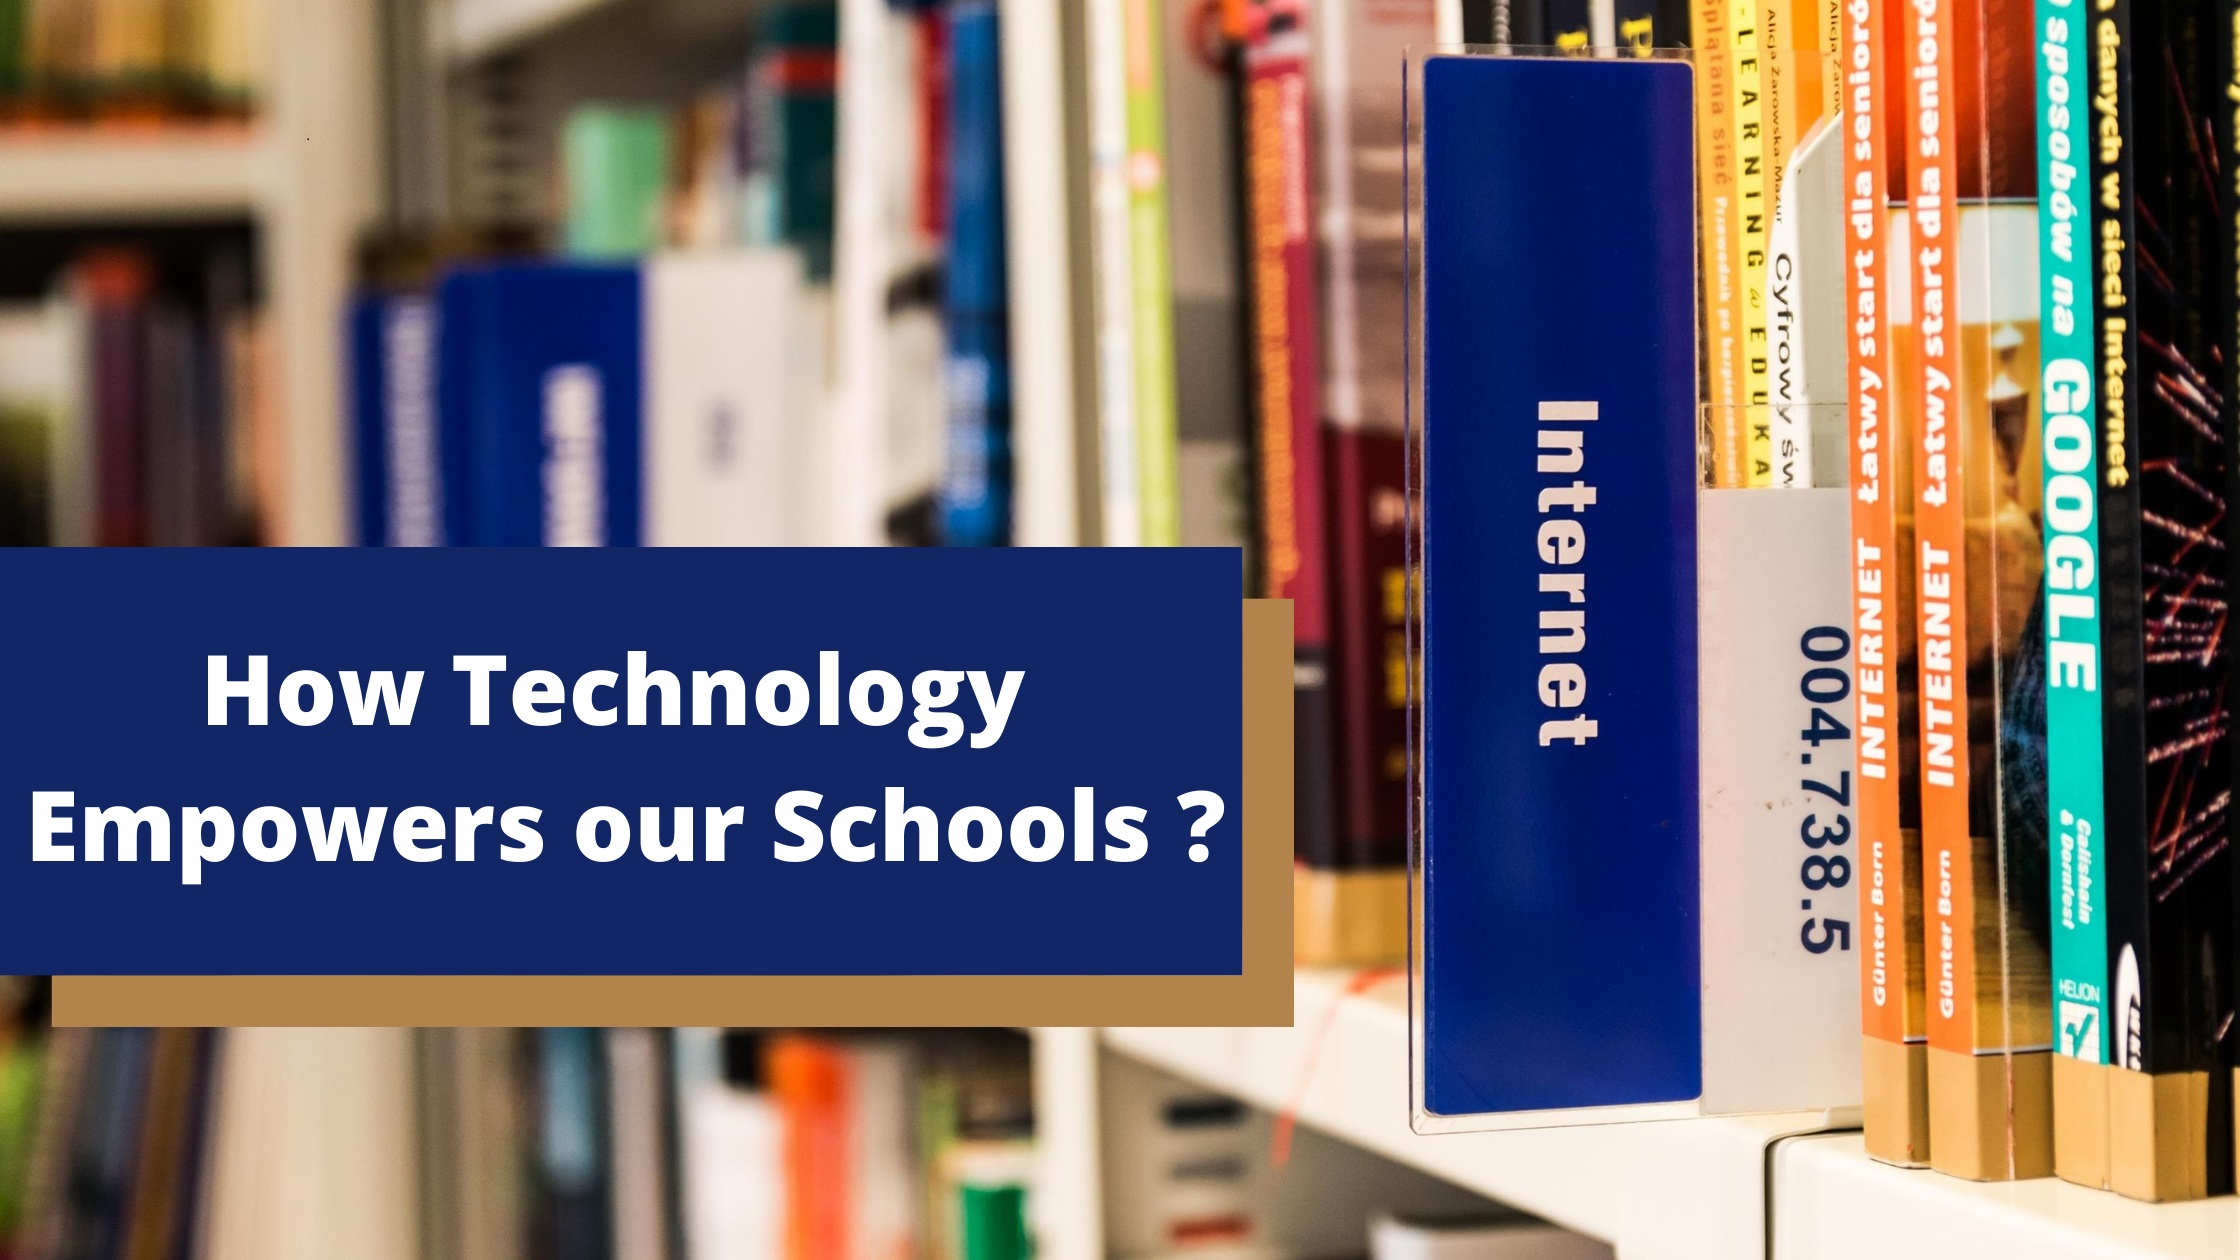 How Technology Empowers our Schools-1604836279.jpg?0.8170859303405782